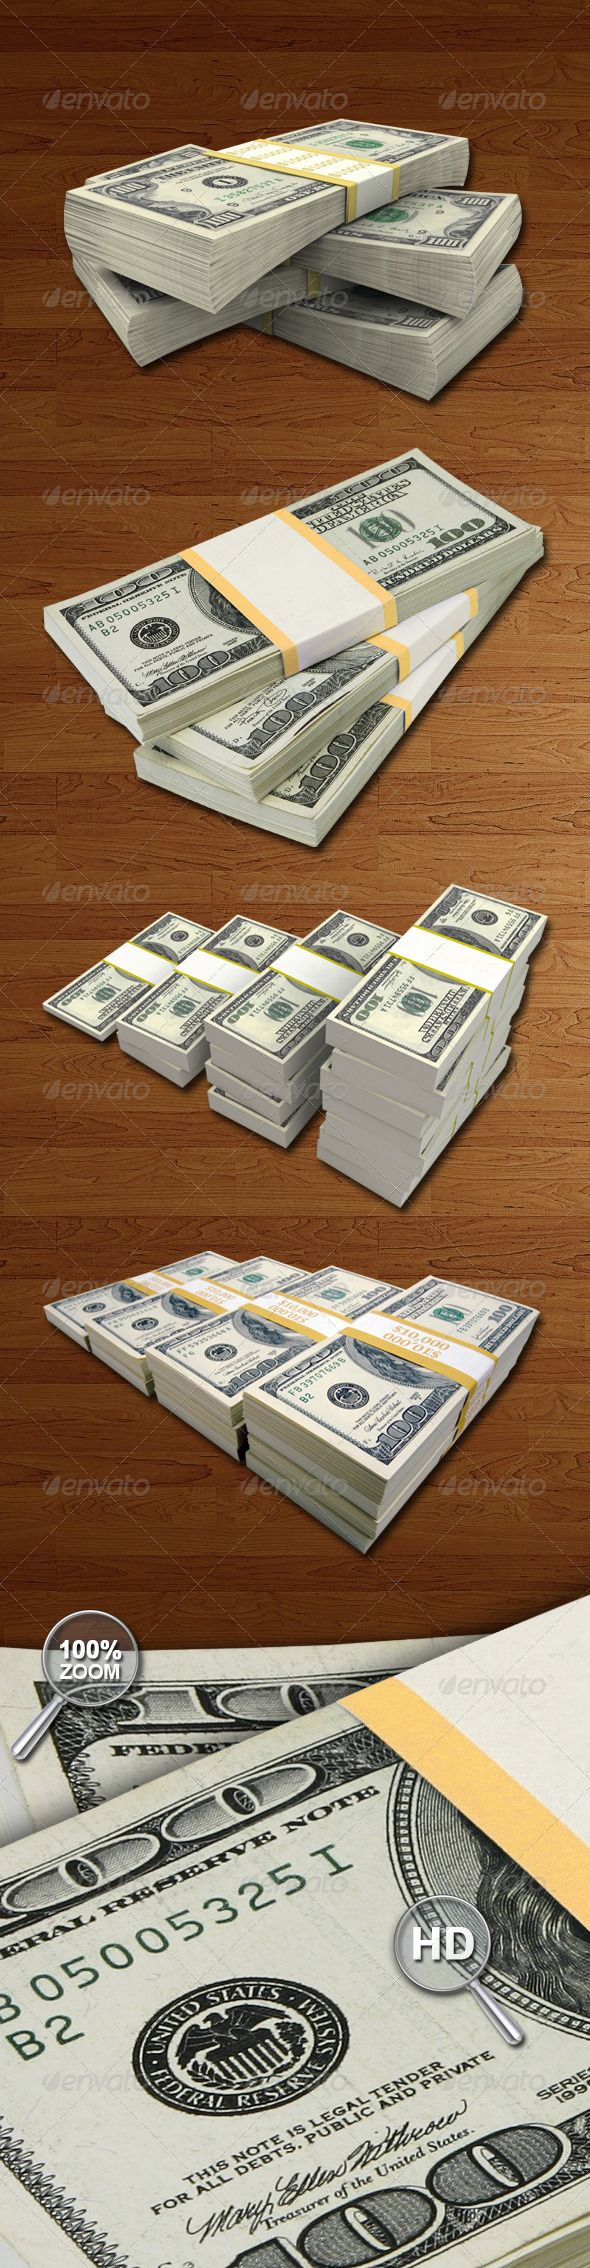 Money Packs Hi-Res #GraphicRiver 4 Money packs, perfect for any use. High quality pictures and clean cutout. 1 PSD files. 4 PNG files with transparent background. 4 JPEG files. Dimensions : 300 DPI reday for print. The colors can be easily manipulated in Photoshop to be whatever you would like. Suited to be used for framing ads, video clips, ending credits, web pages, etc… Enjoy! Flyers Bundles YOU MAY ALSO LIKE Created: 4June13 GraphicsFilesIncluded: PhotoshopPSD #TransparentPNG #JPGImage…